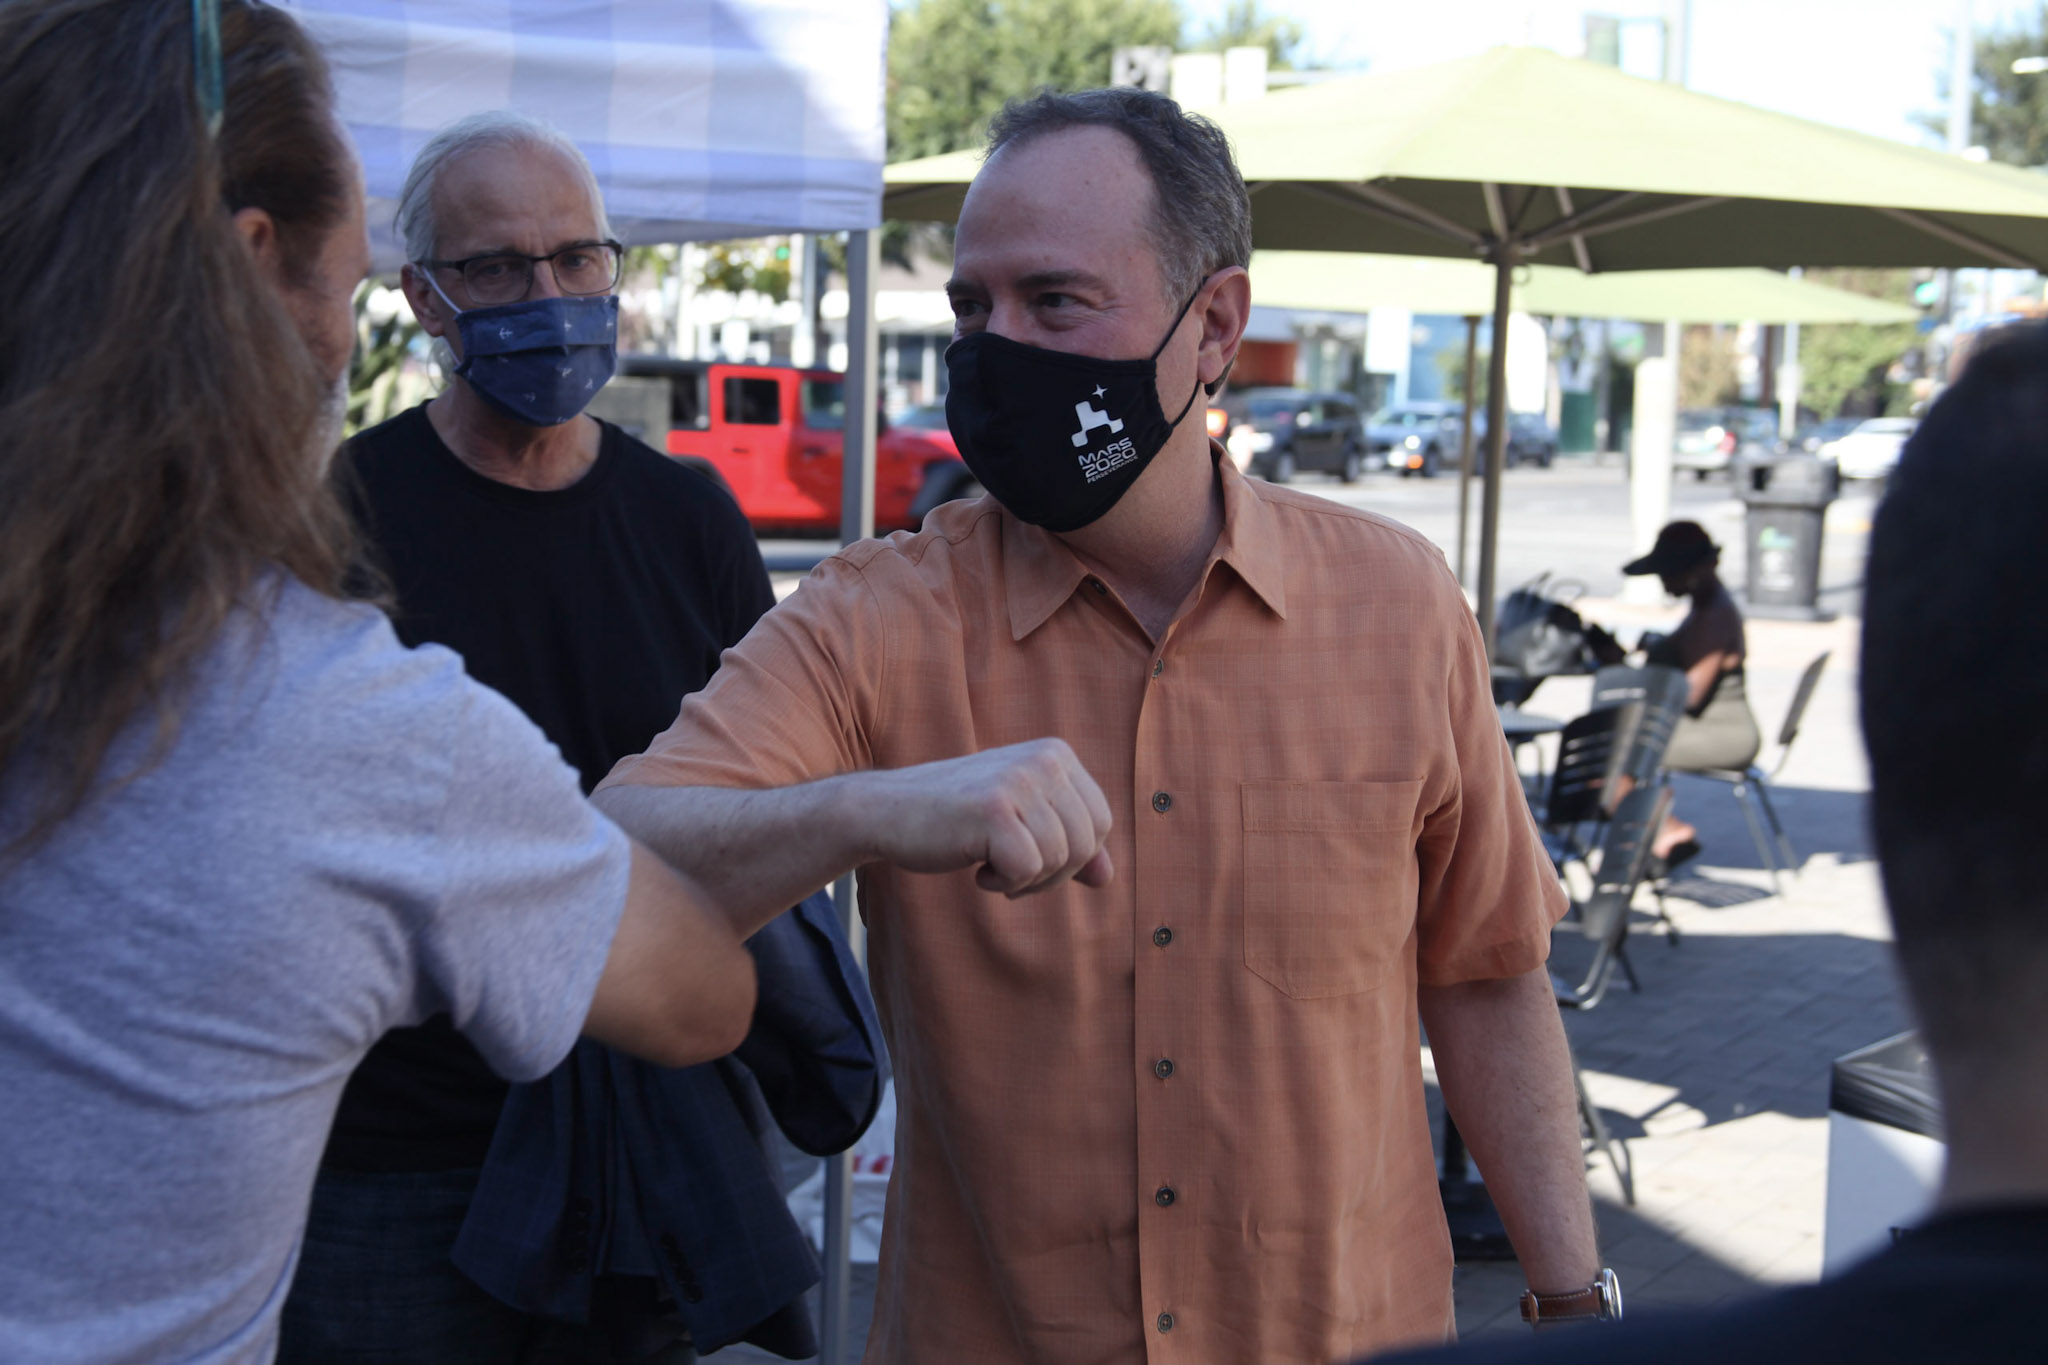 Adam Schiff wearing a protective mask